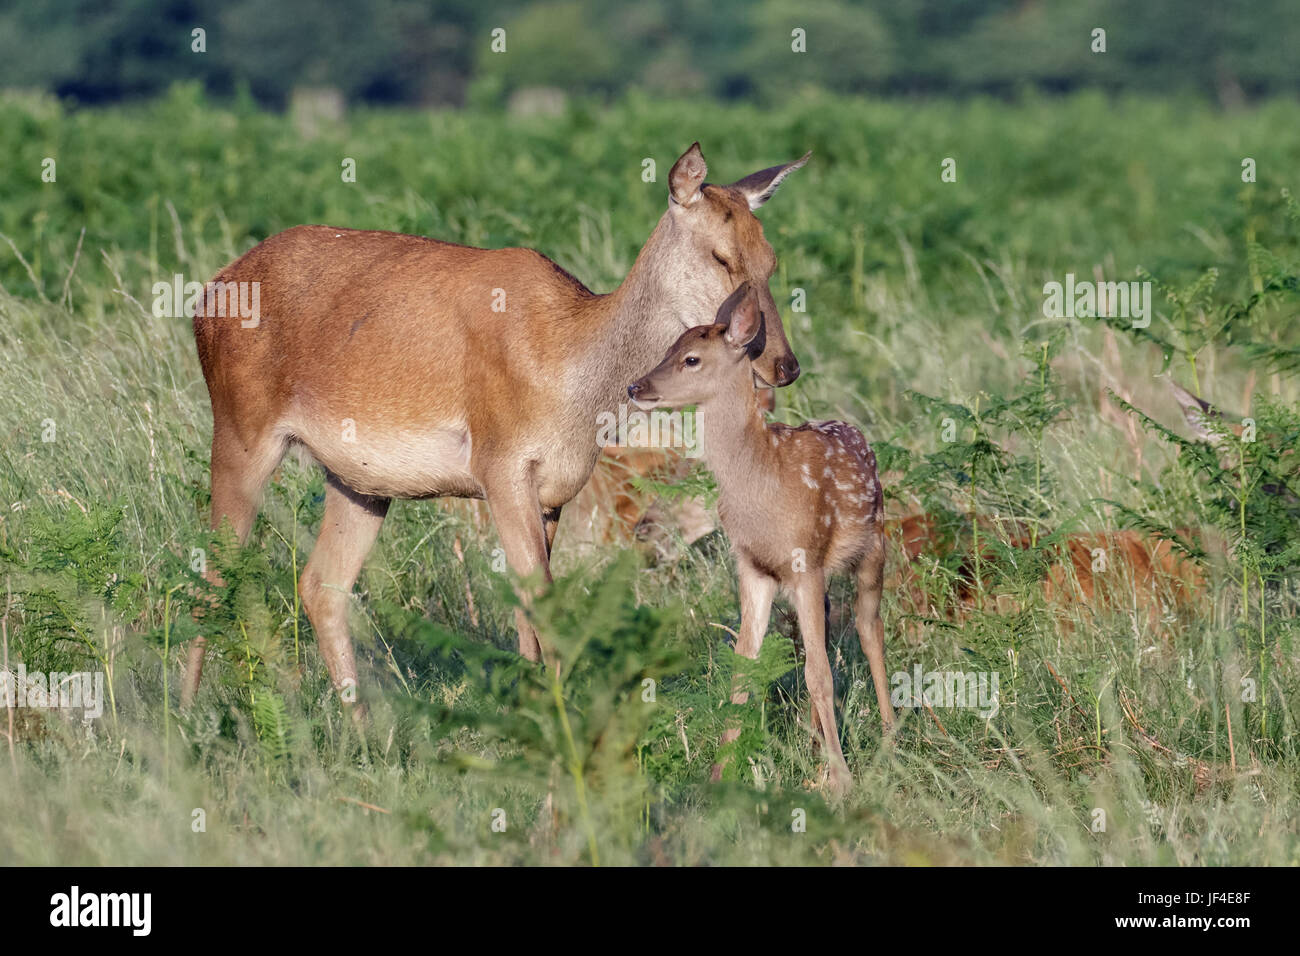 Red deer (Cervus elaphus) female hind mother and young baby calf having a tender bonding moment - Stock Image